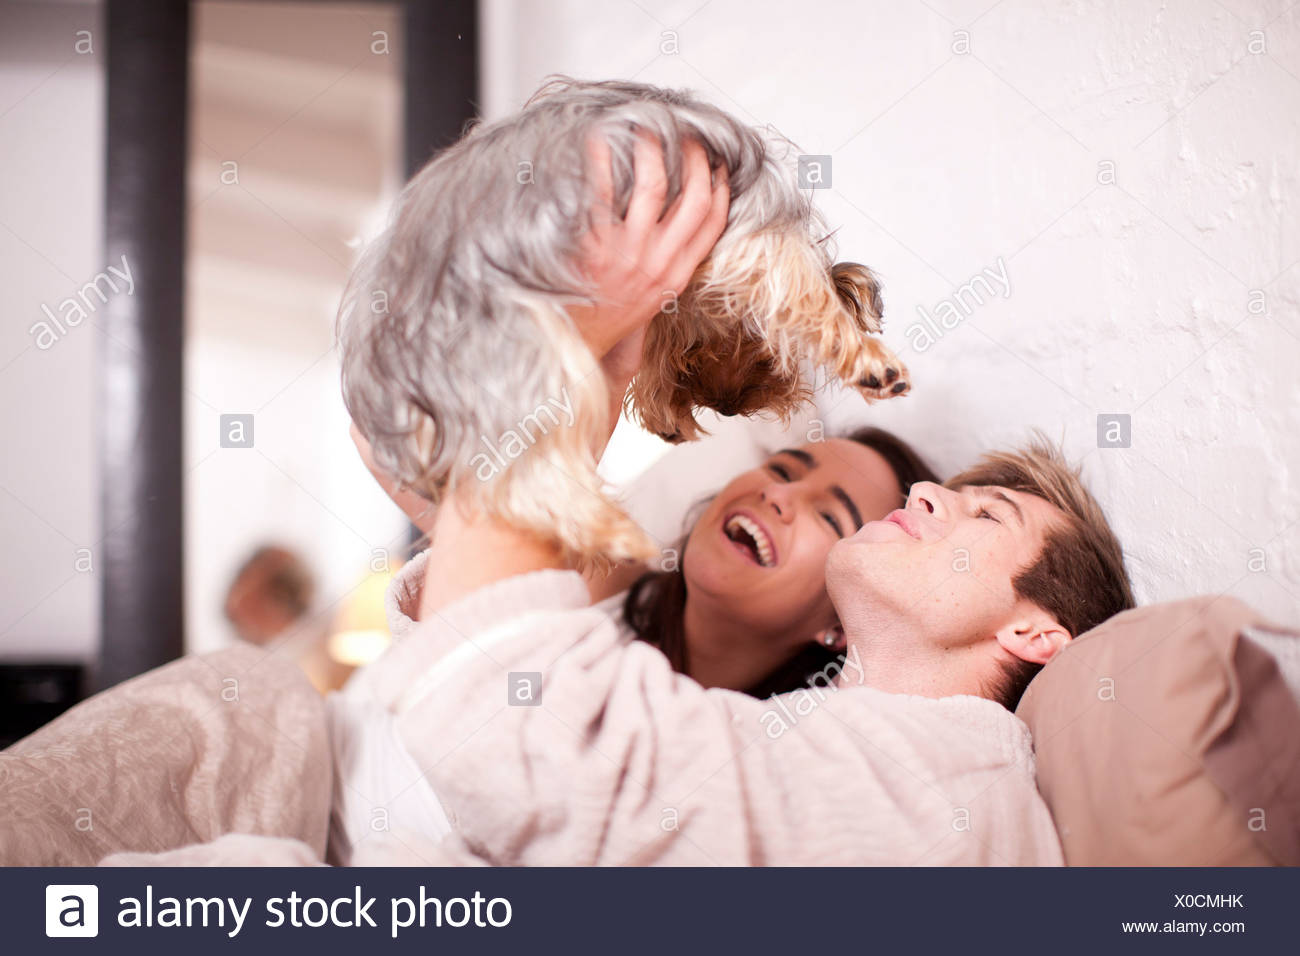 Young couple in bed with pet dog - Stock Image